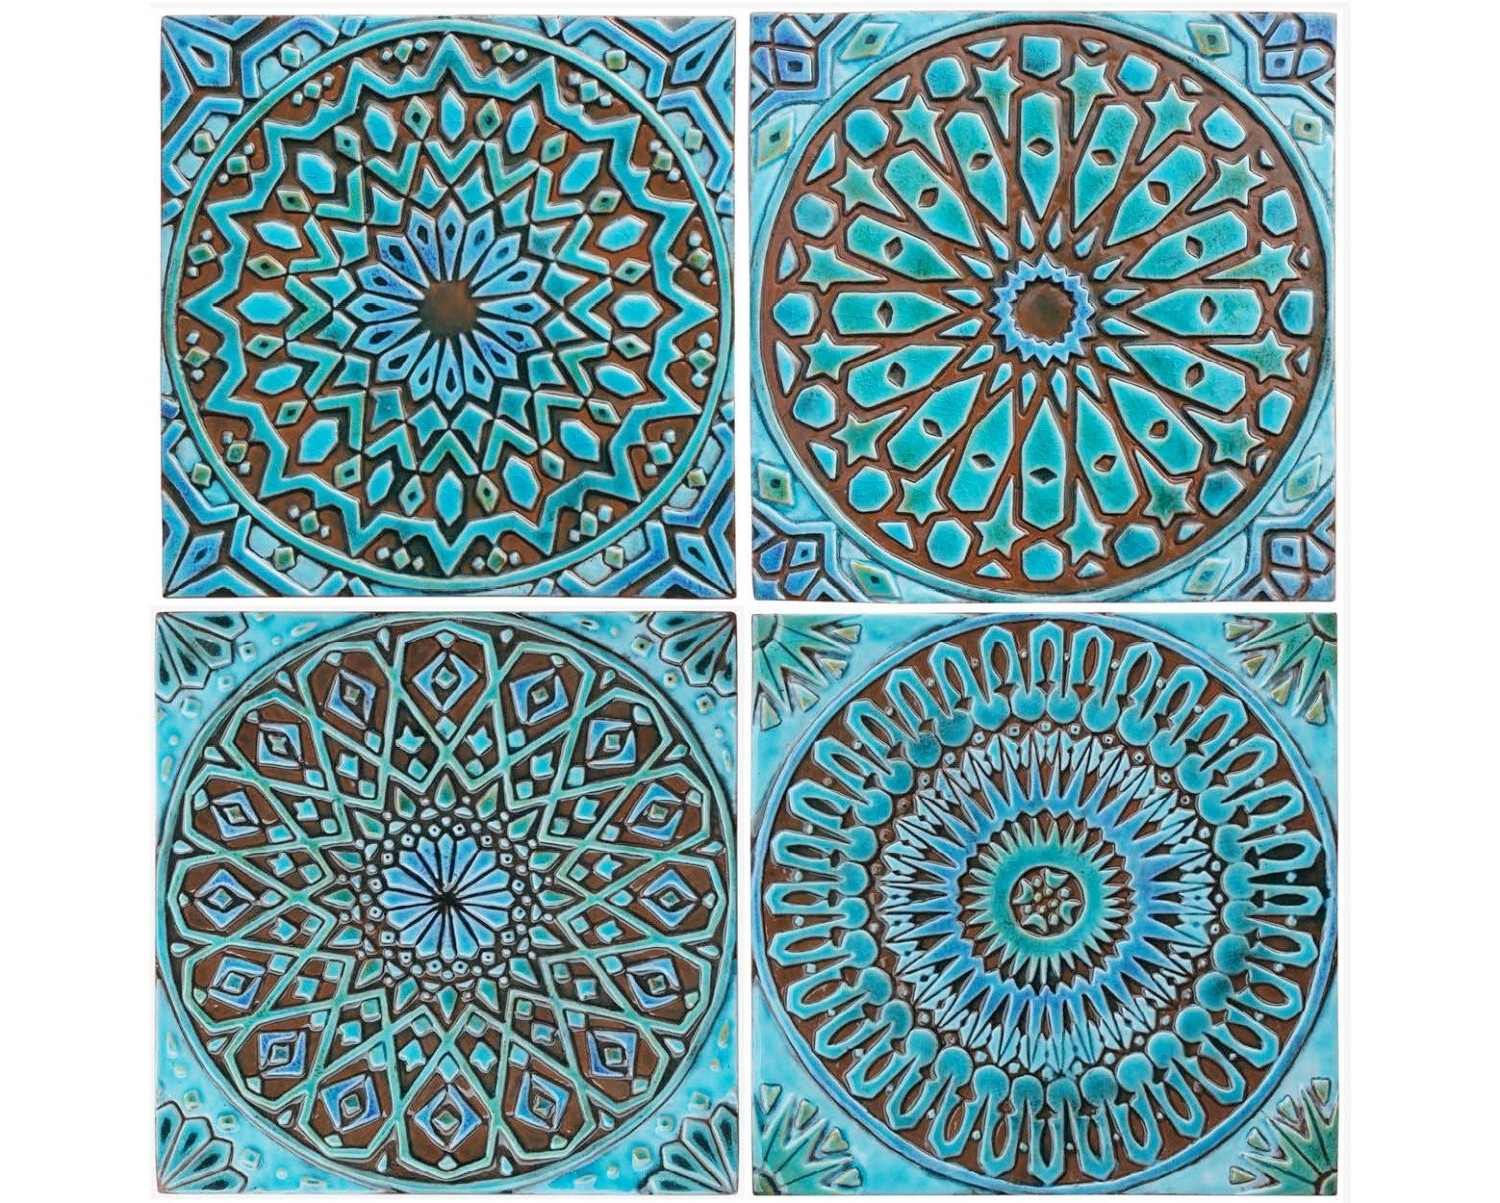 Moroccan Wall Art Intended For Recent Moroccan Decor, Set Of 4 Moroccan Tiles, Moroccan Wall Art, Outdoor (View 14 of 20)